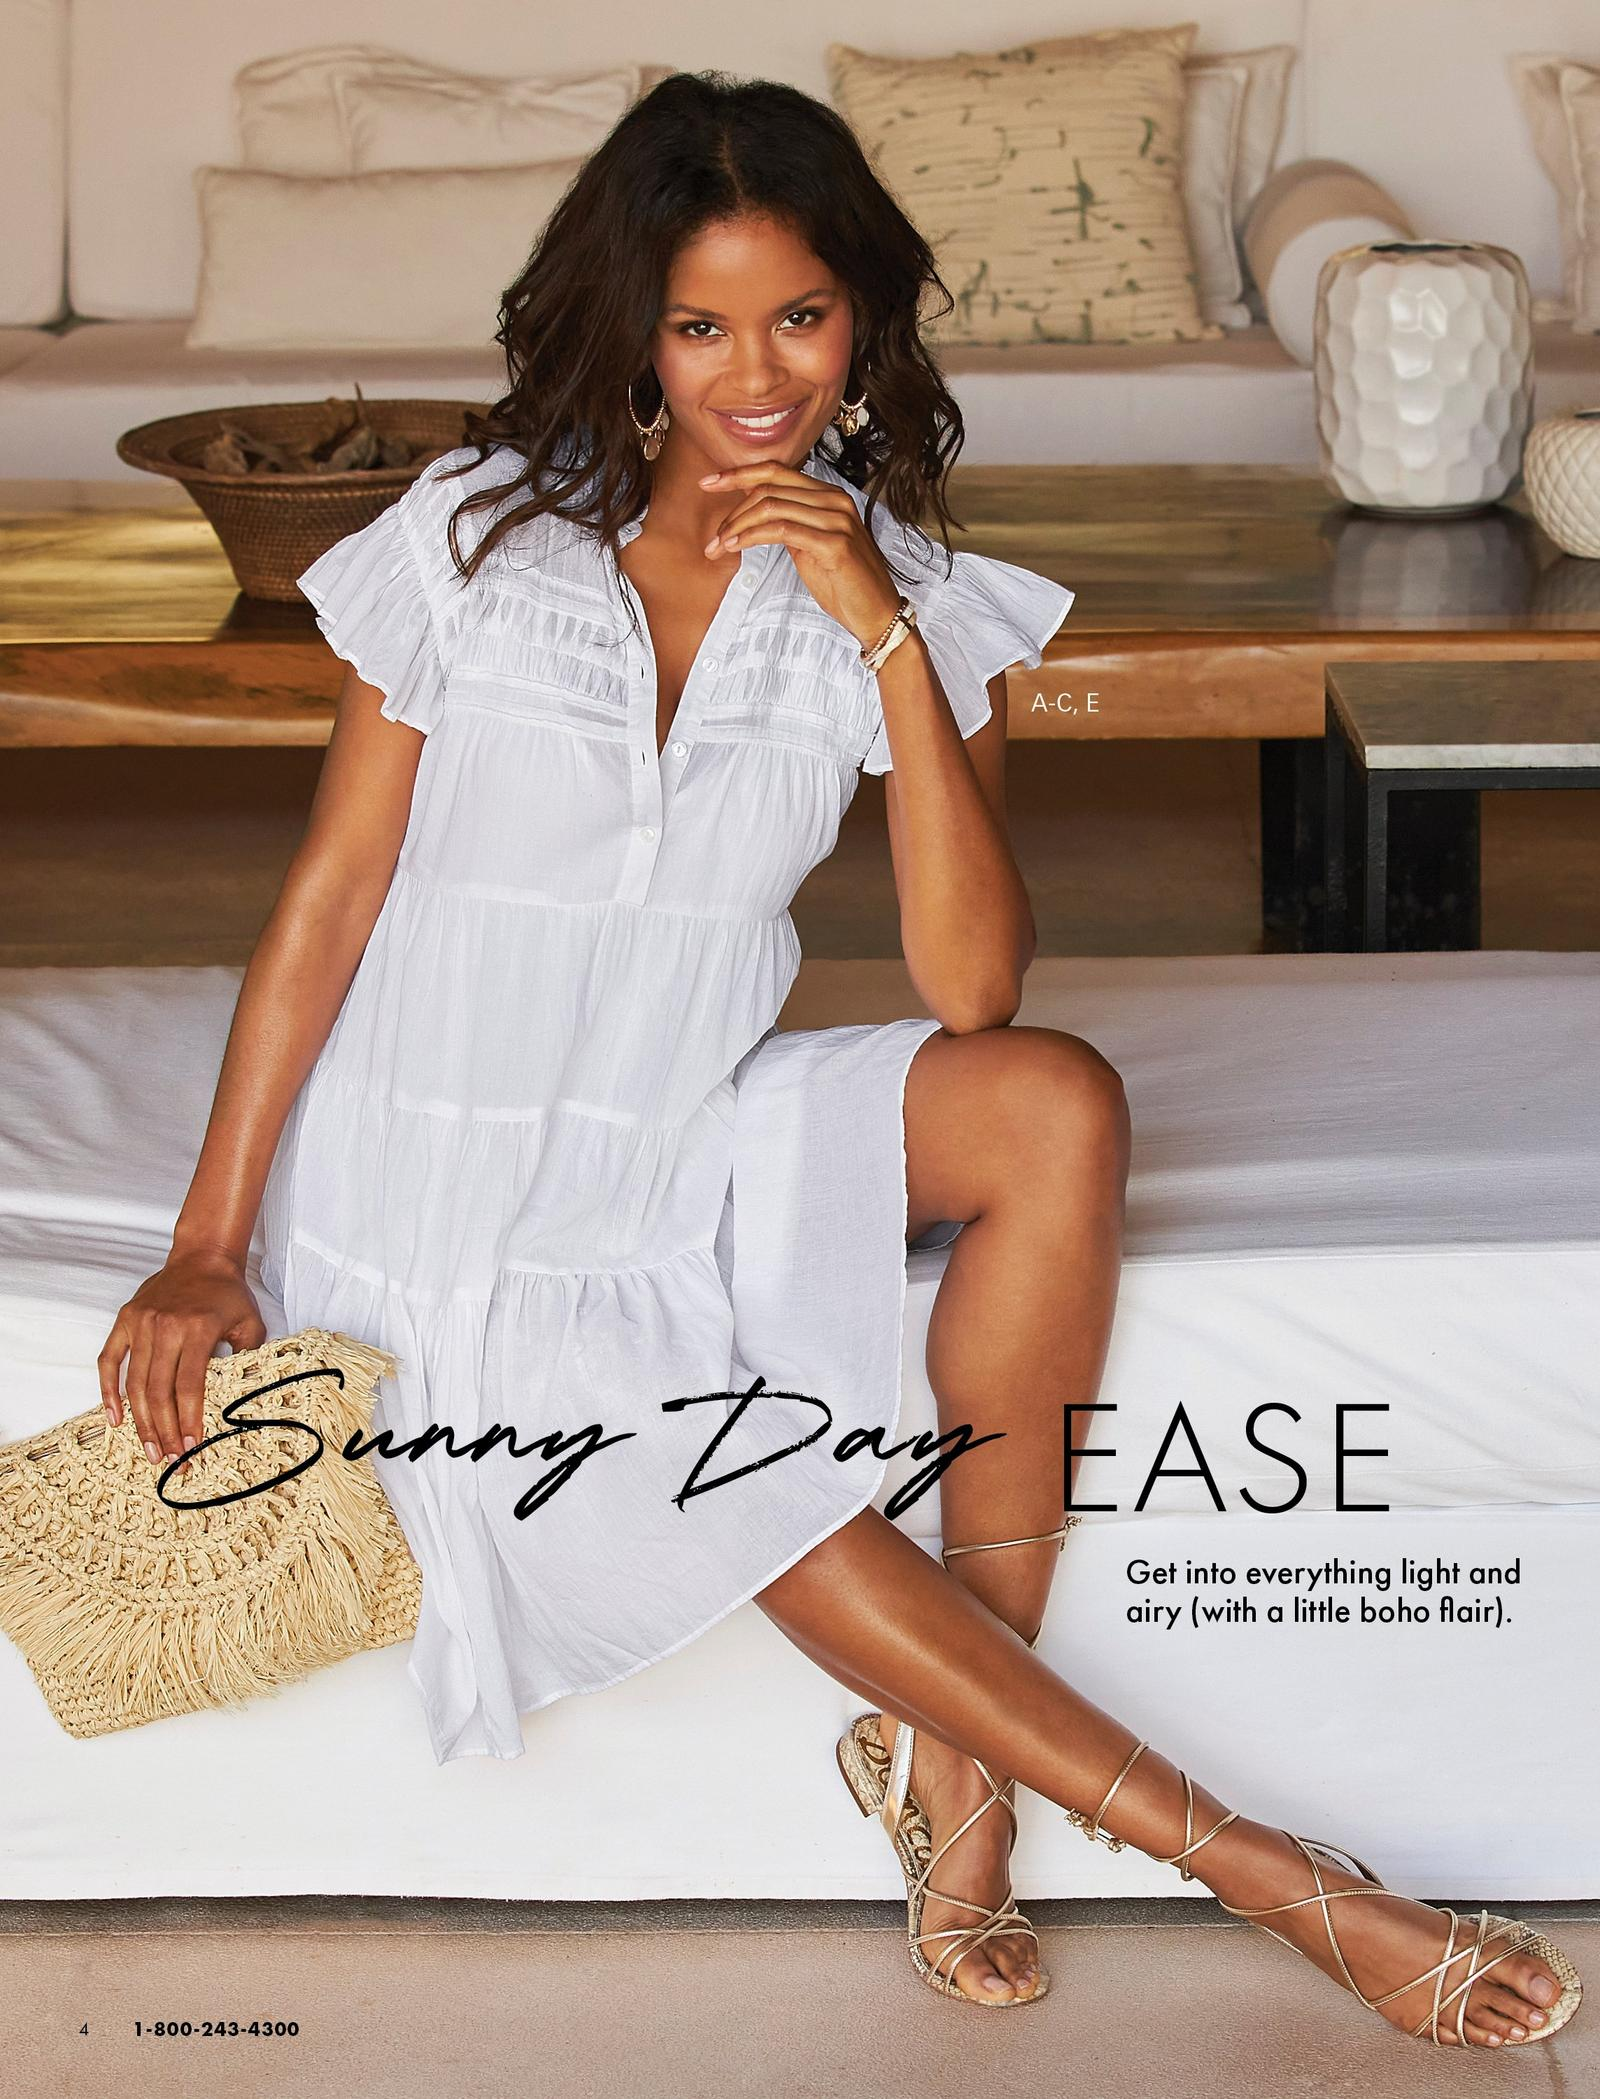 model wearing a white tiered shift dress, gold embellished hoop earrings, gold lace-up sandals, and holding a straw clutch.